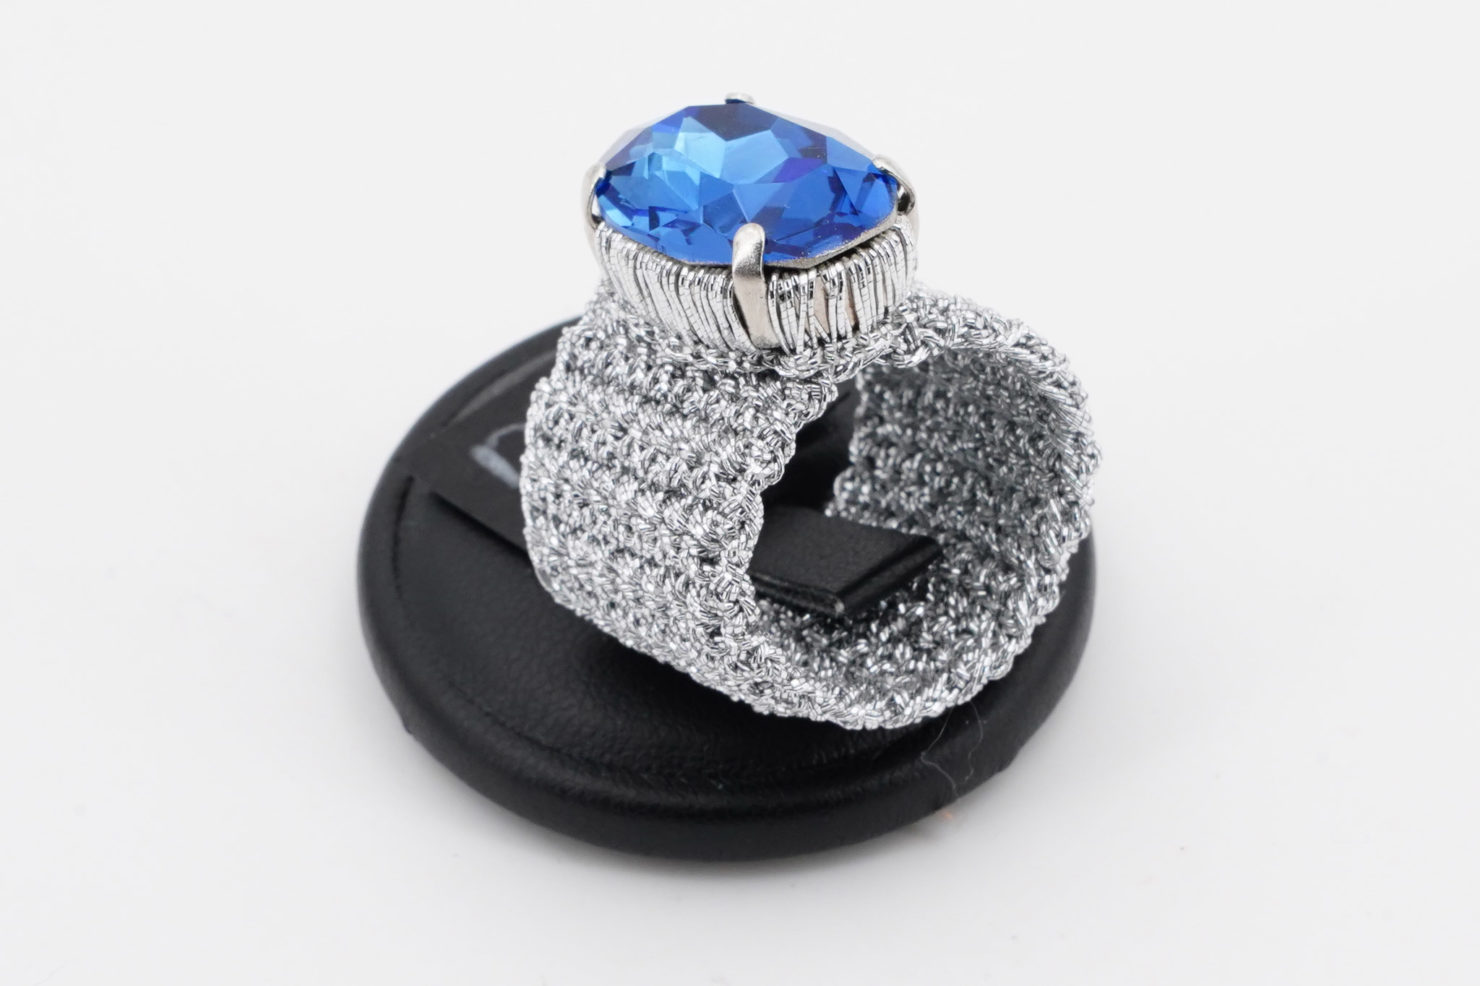 PLATINUM BAND + BLUE LIZ OVAL CRISTAL RING M - TMD BIJOUX